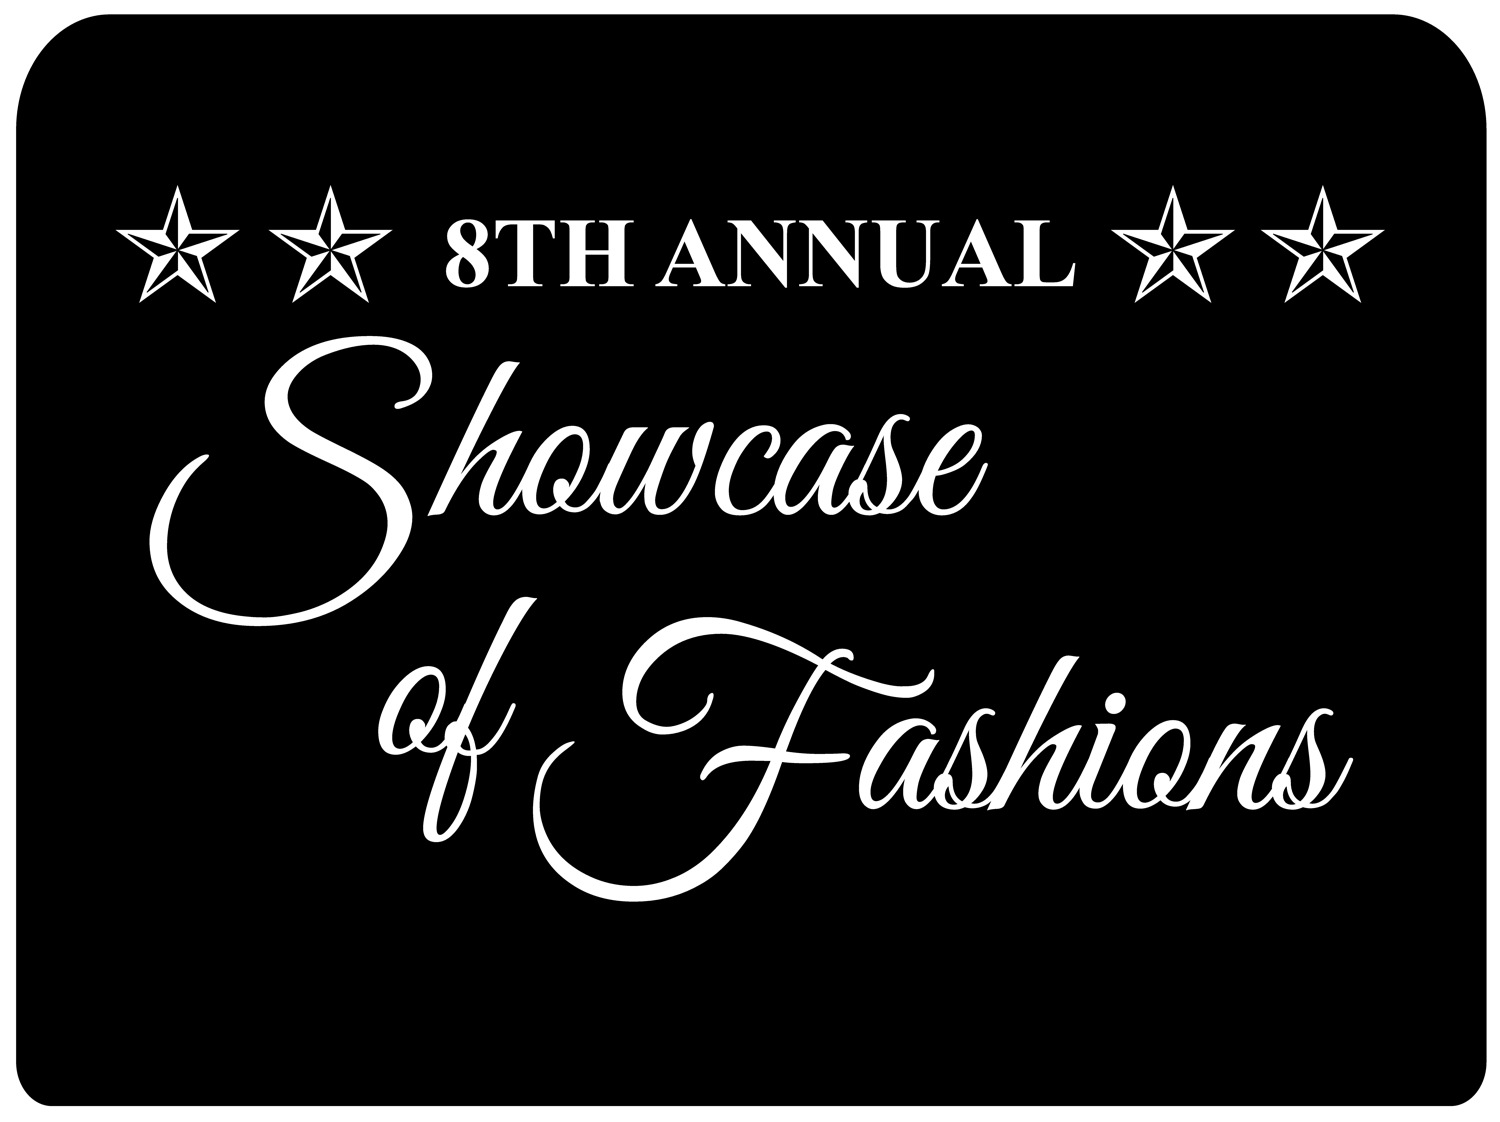 Vpen 20  208th 20annual 20showcase 20of 20fashions 20  20crvs